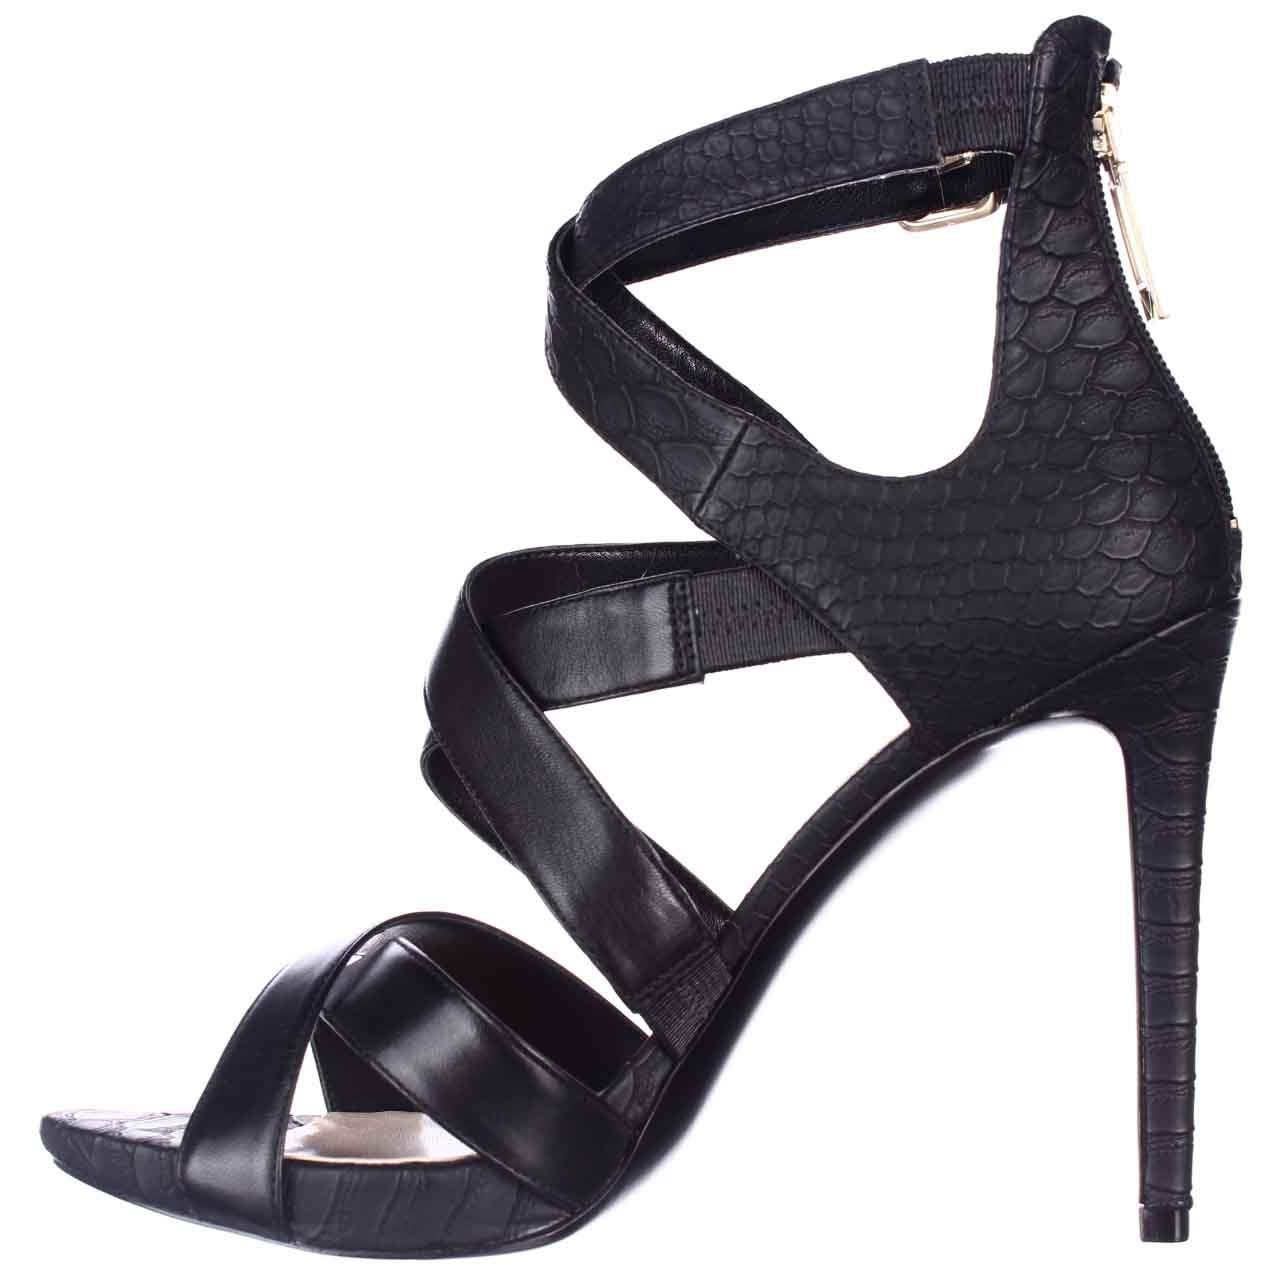 4c426b50a3f Lyst - Guess Abby Strappy Heels Dress Sandals in Black